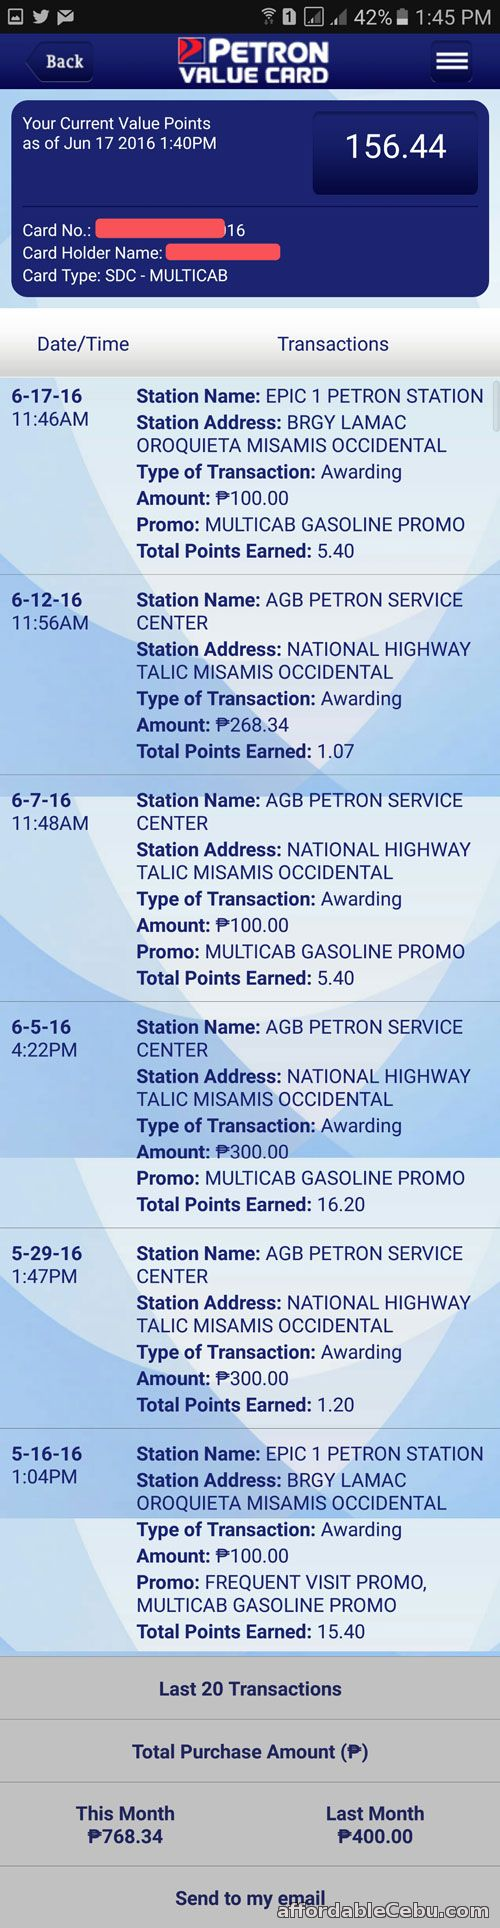 Petron Value Card Points Inquiry